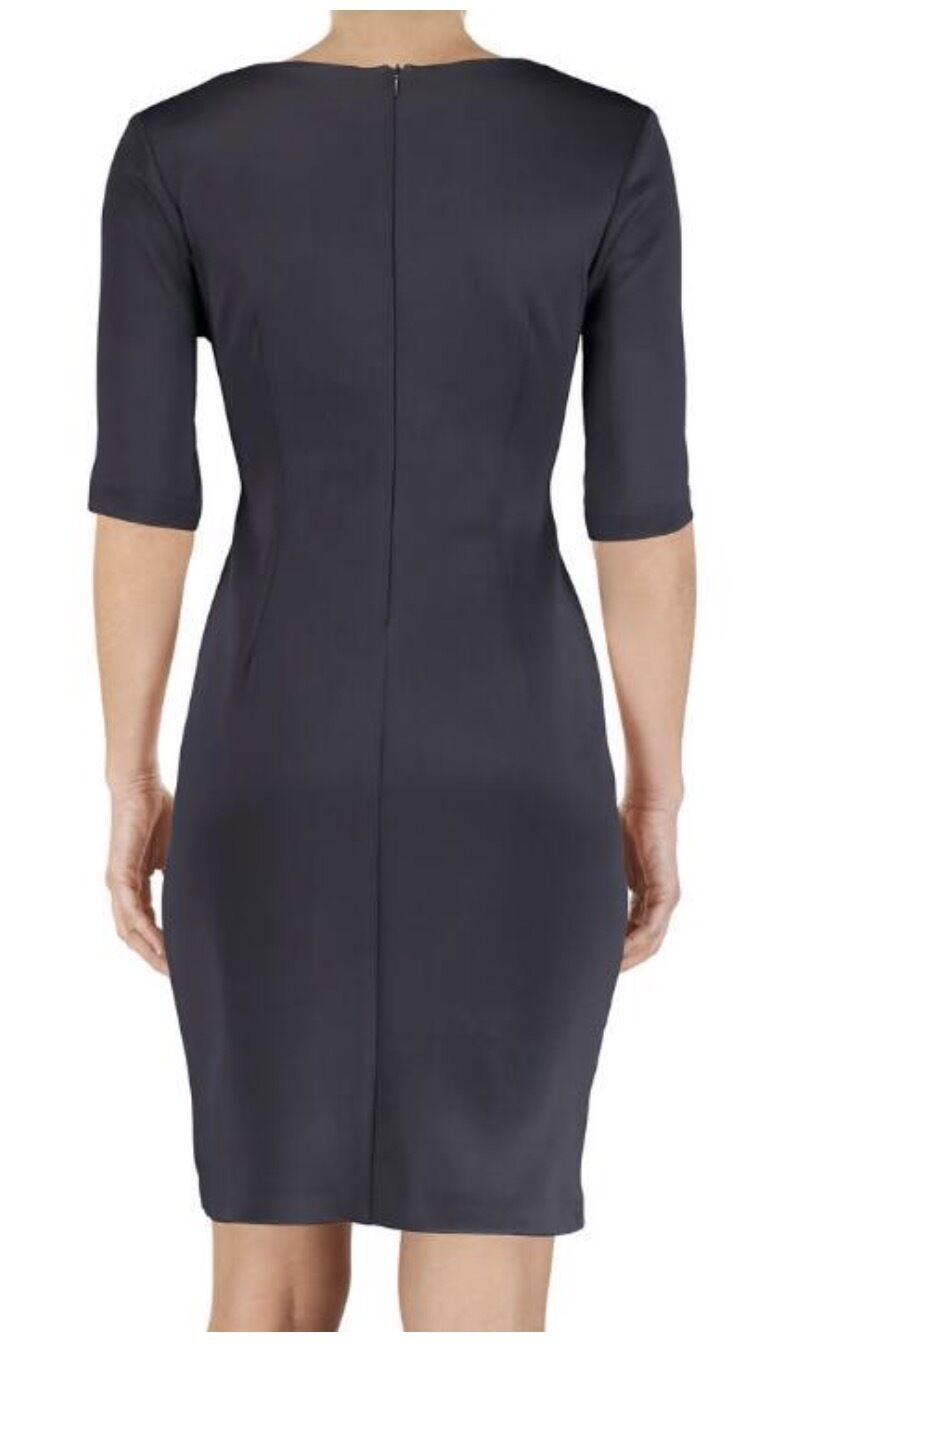 Connected Laser cut Panel Sheath midnight blue with beig insert Dress Size 8 NWT image 5